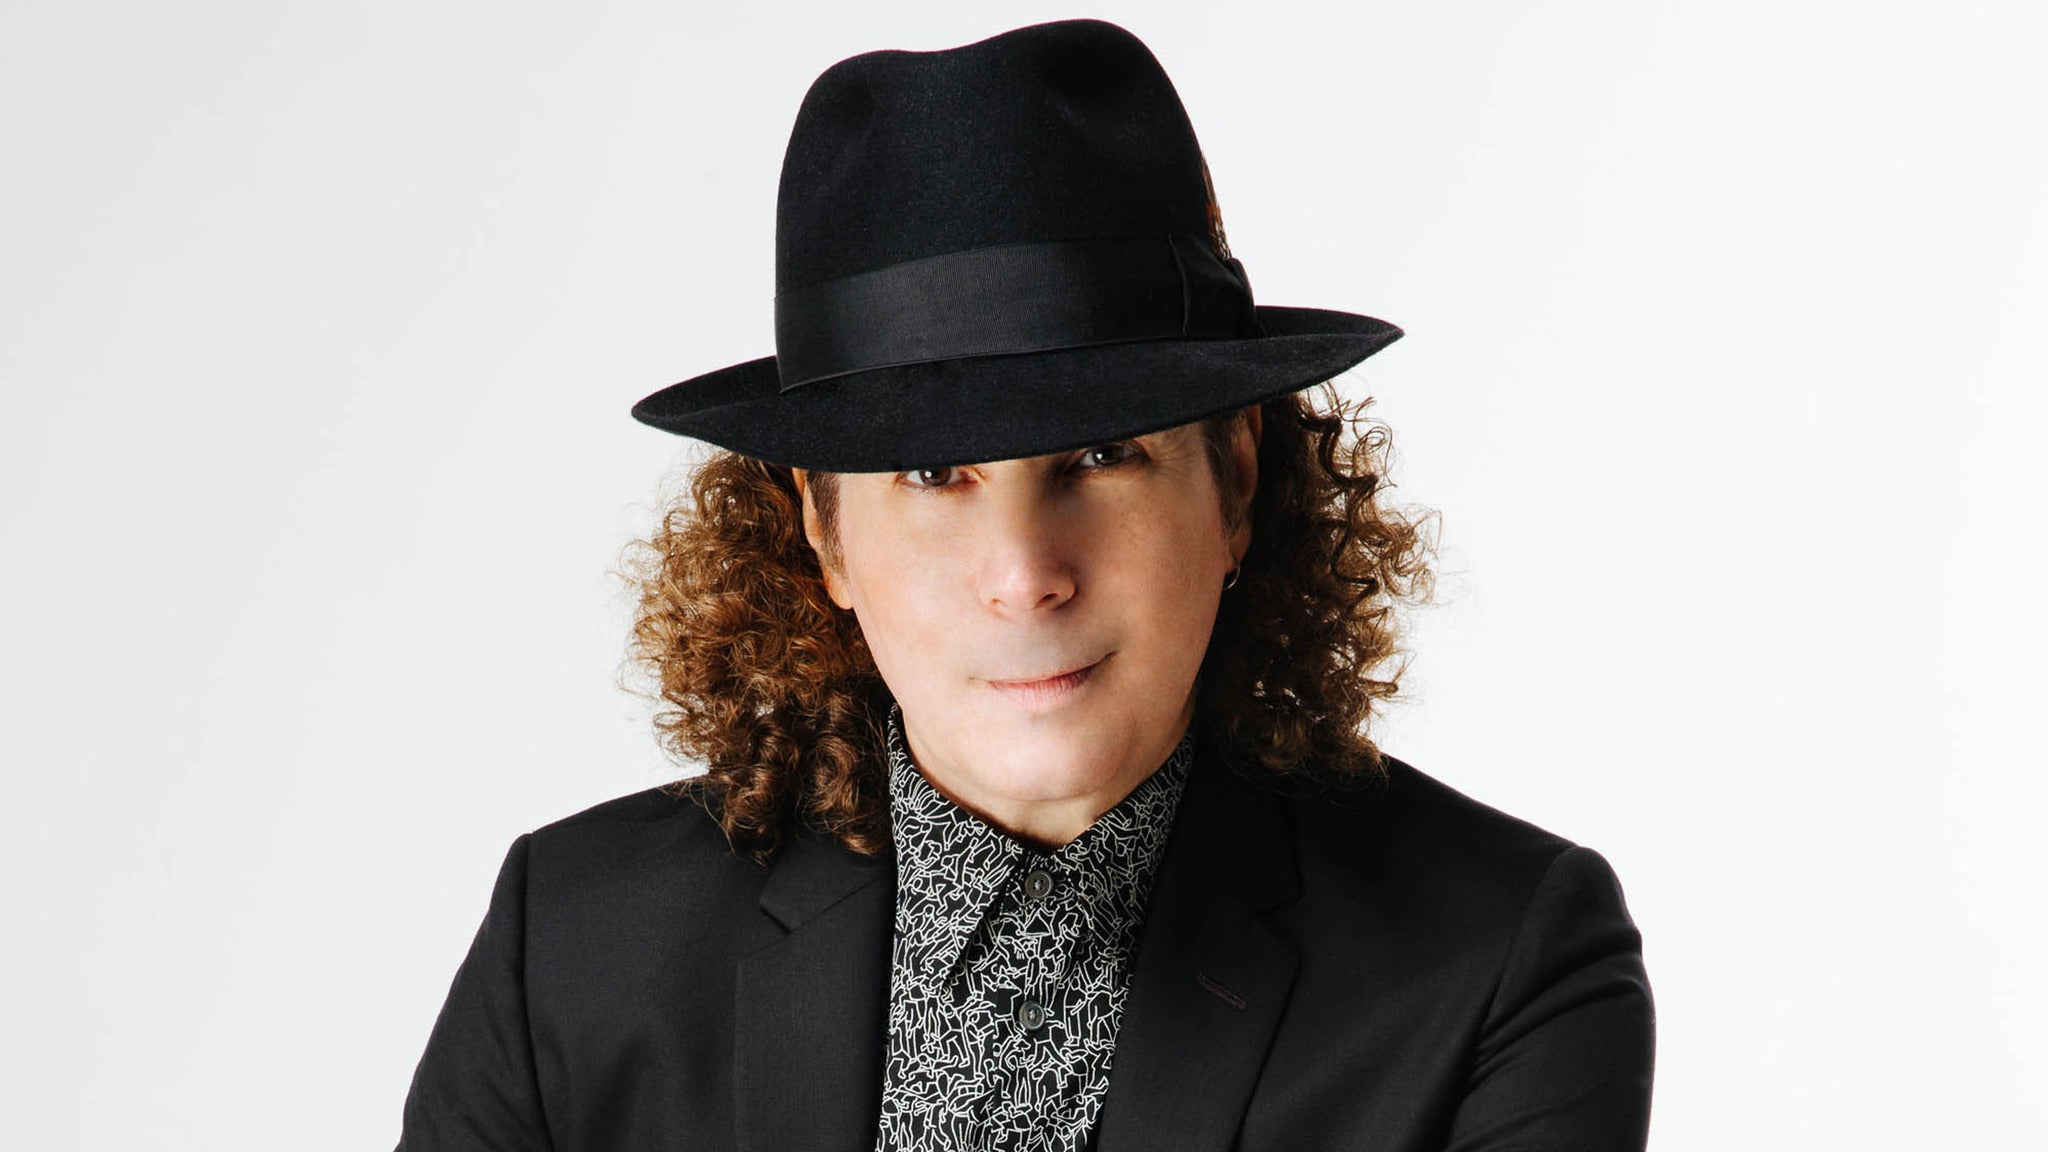 Boney James at Scottish Rite Auditorium